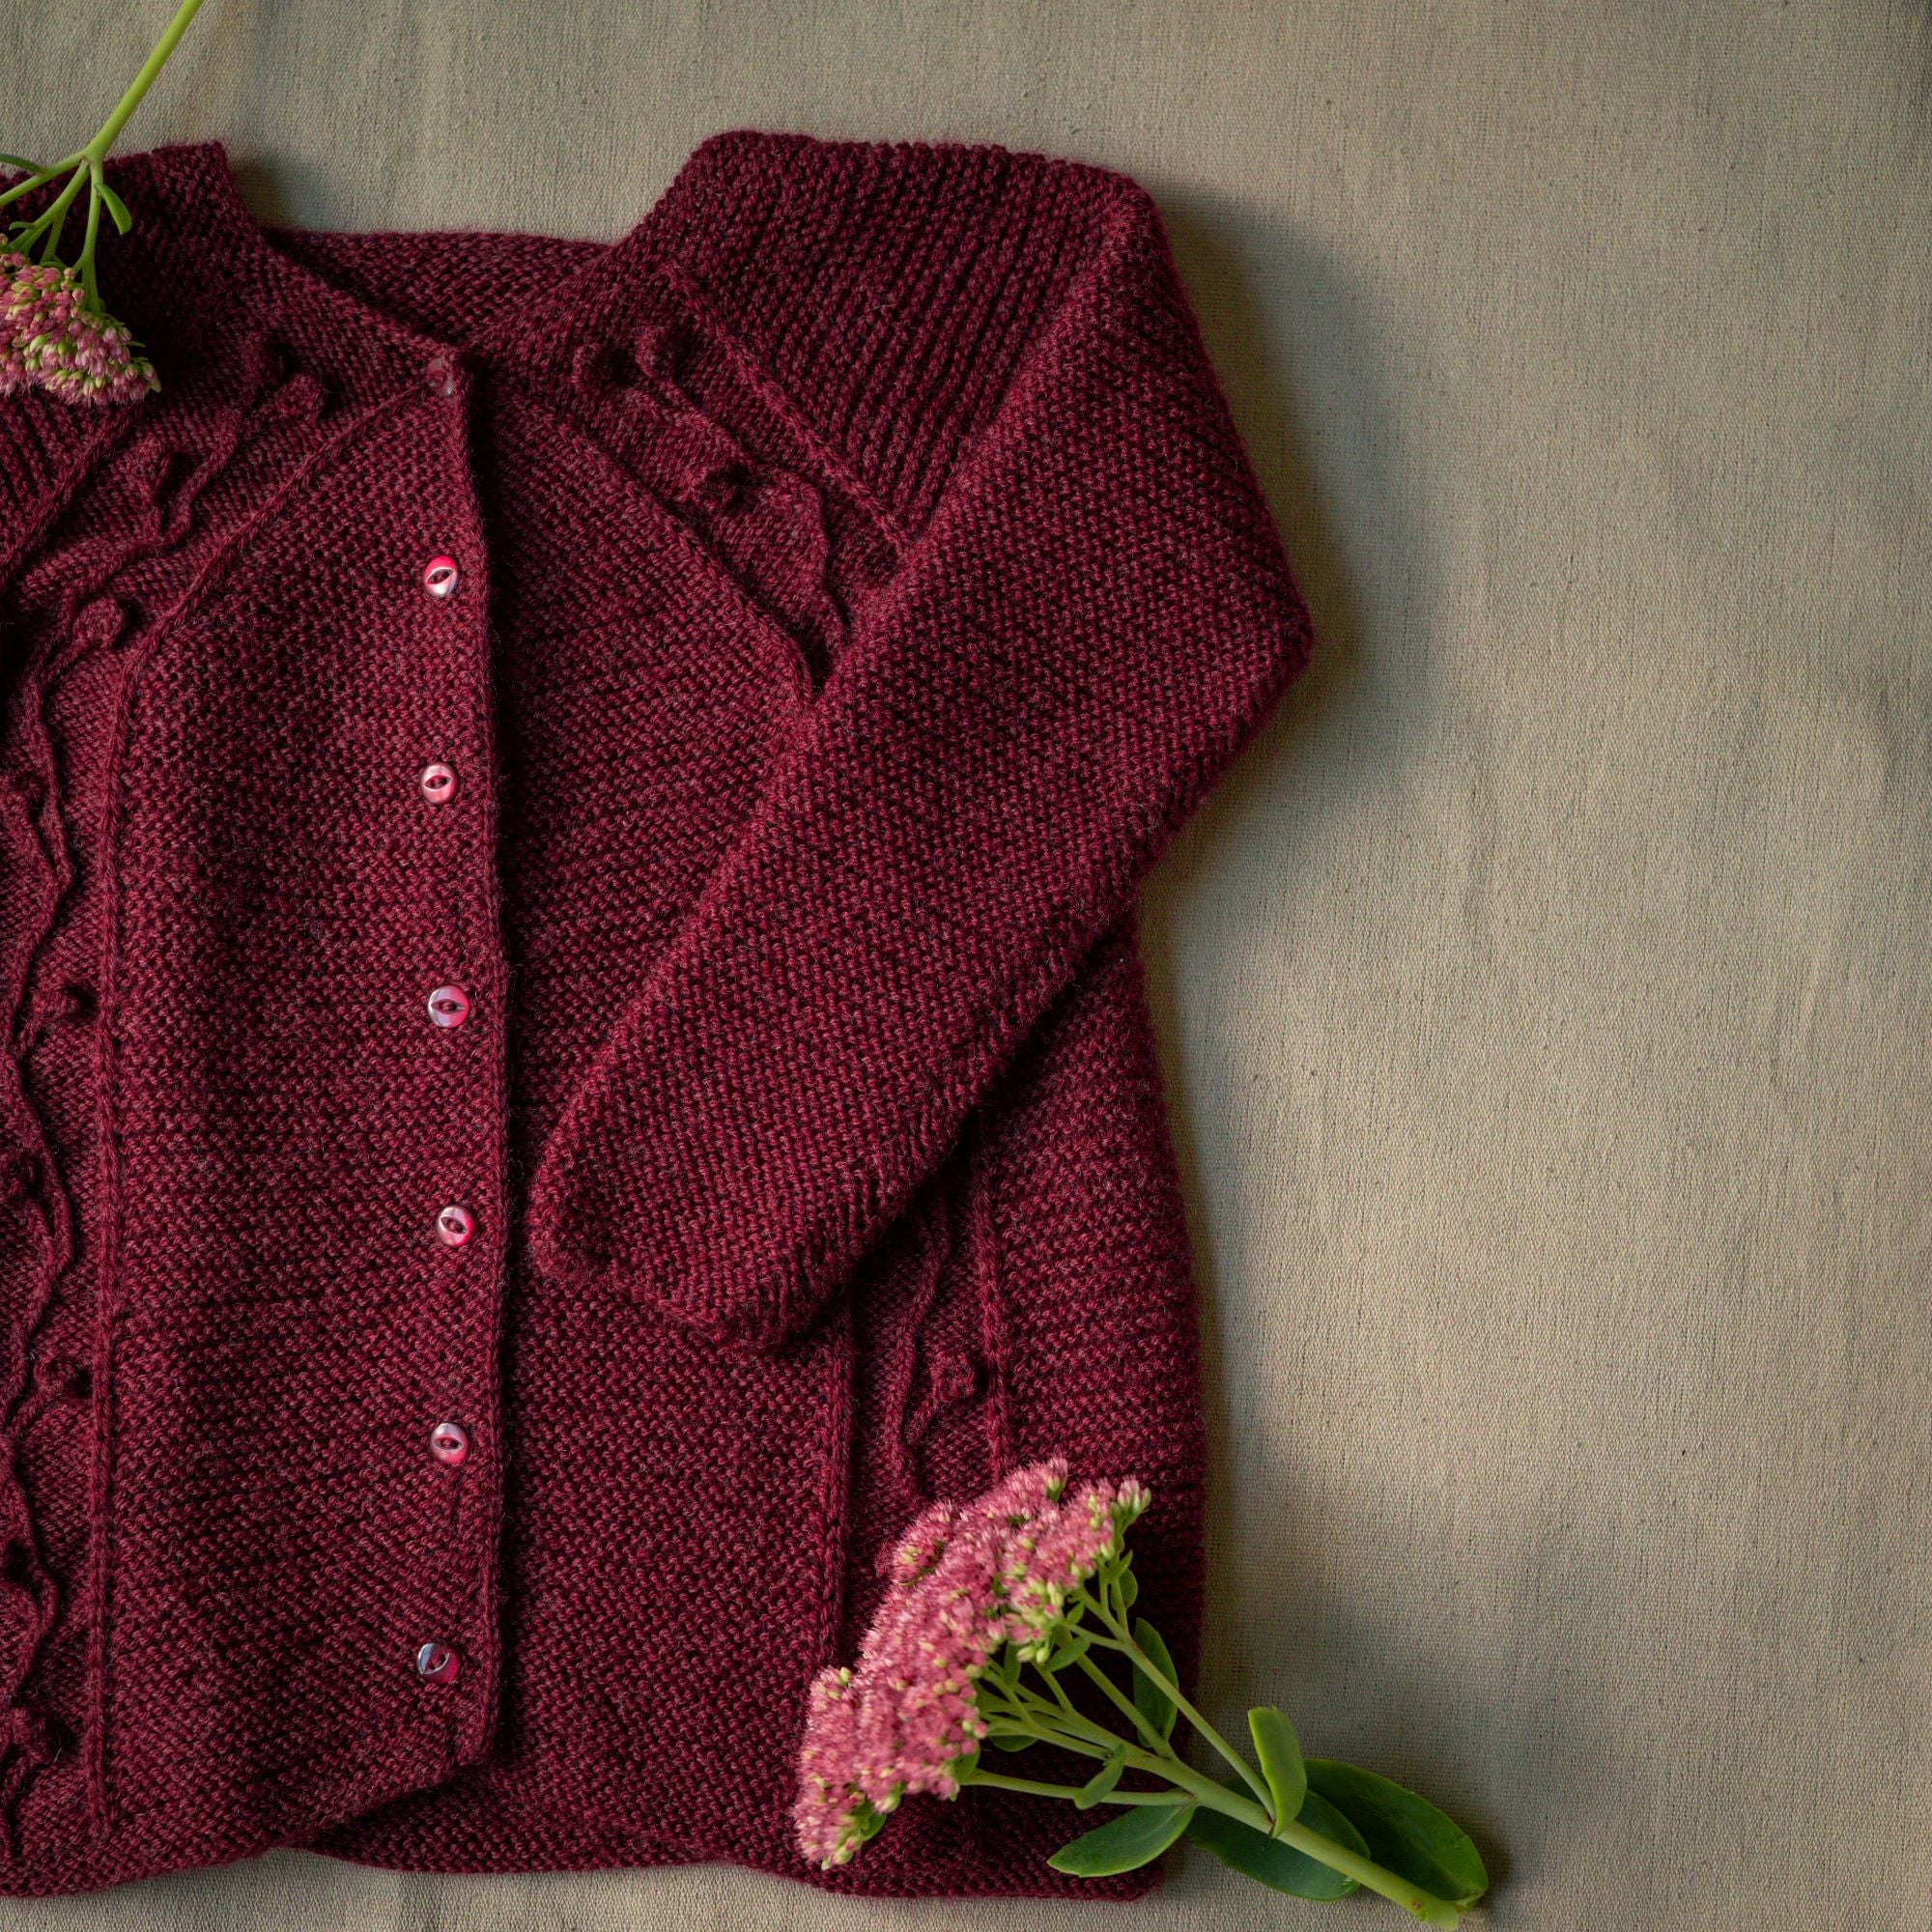 Uldklumpers Blomsterrillecardigan